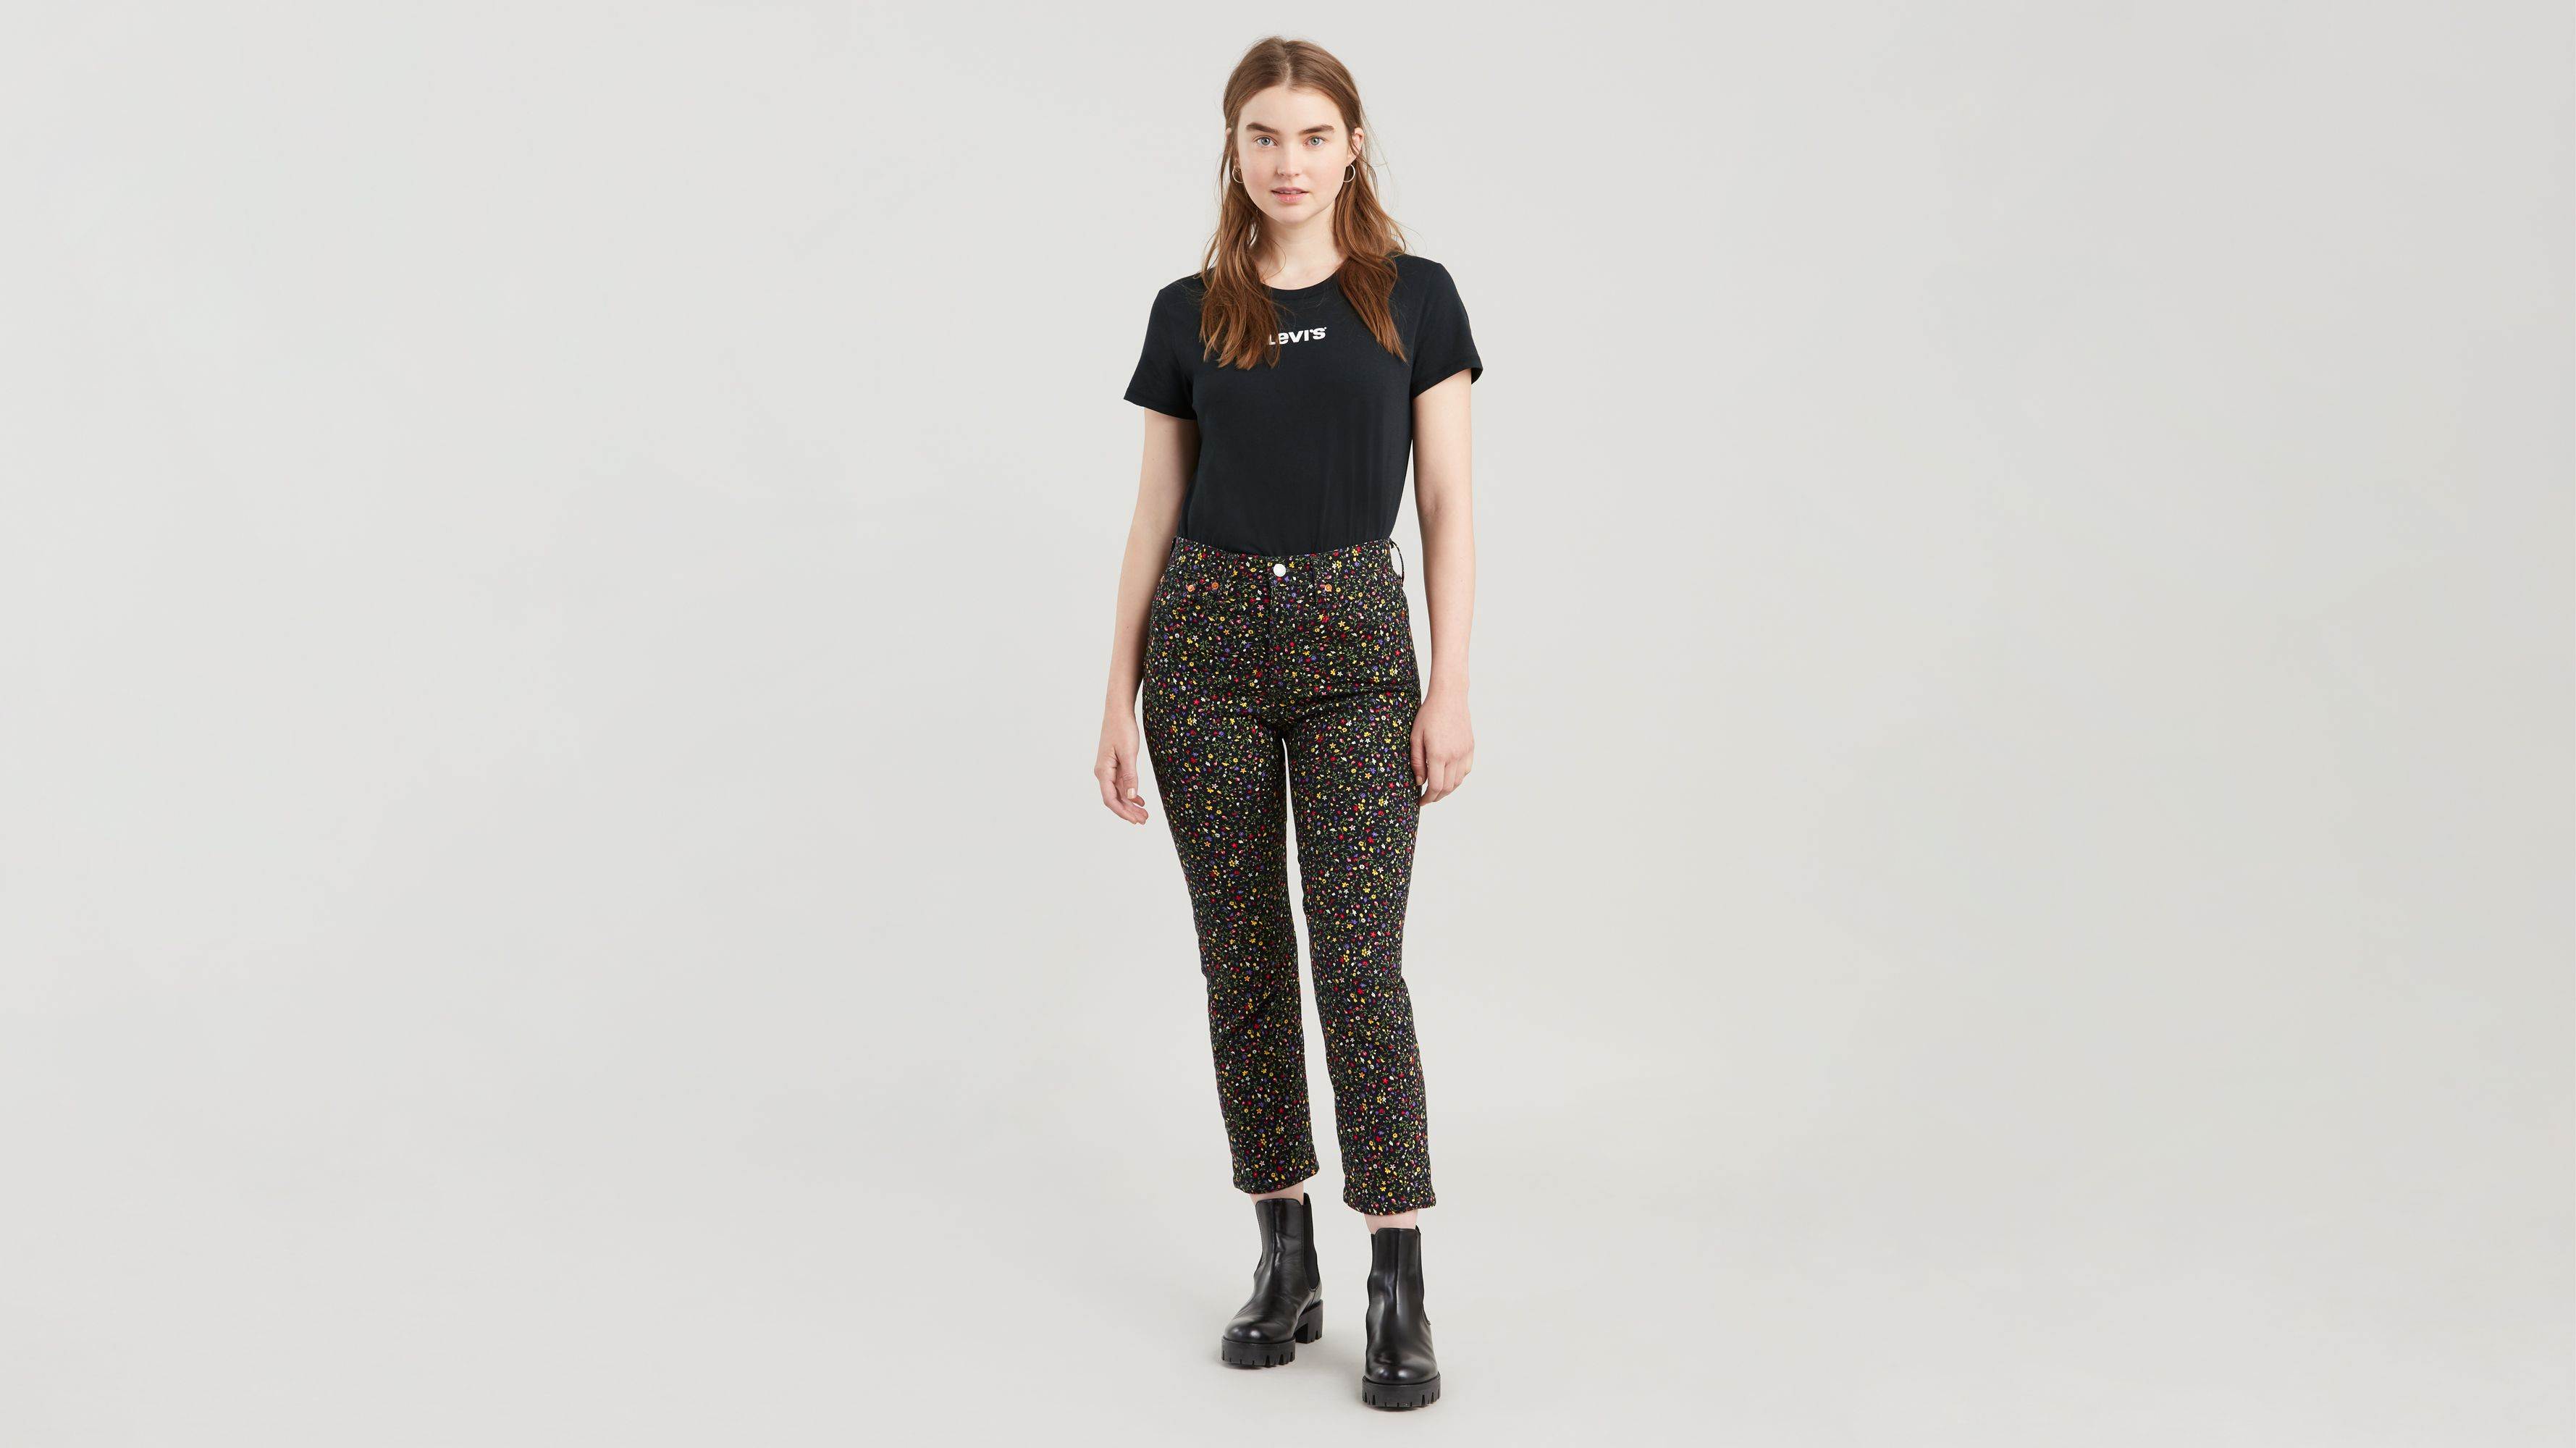 Straight Wedgie Wedgie Jeans It NeroLevi's® jRqAL435